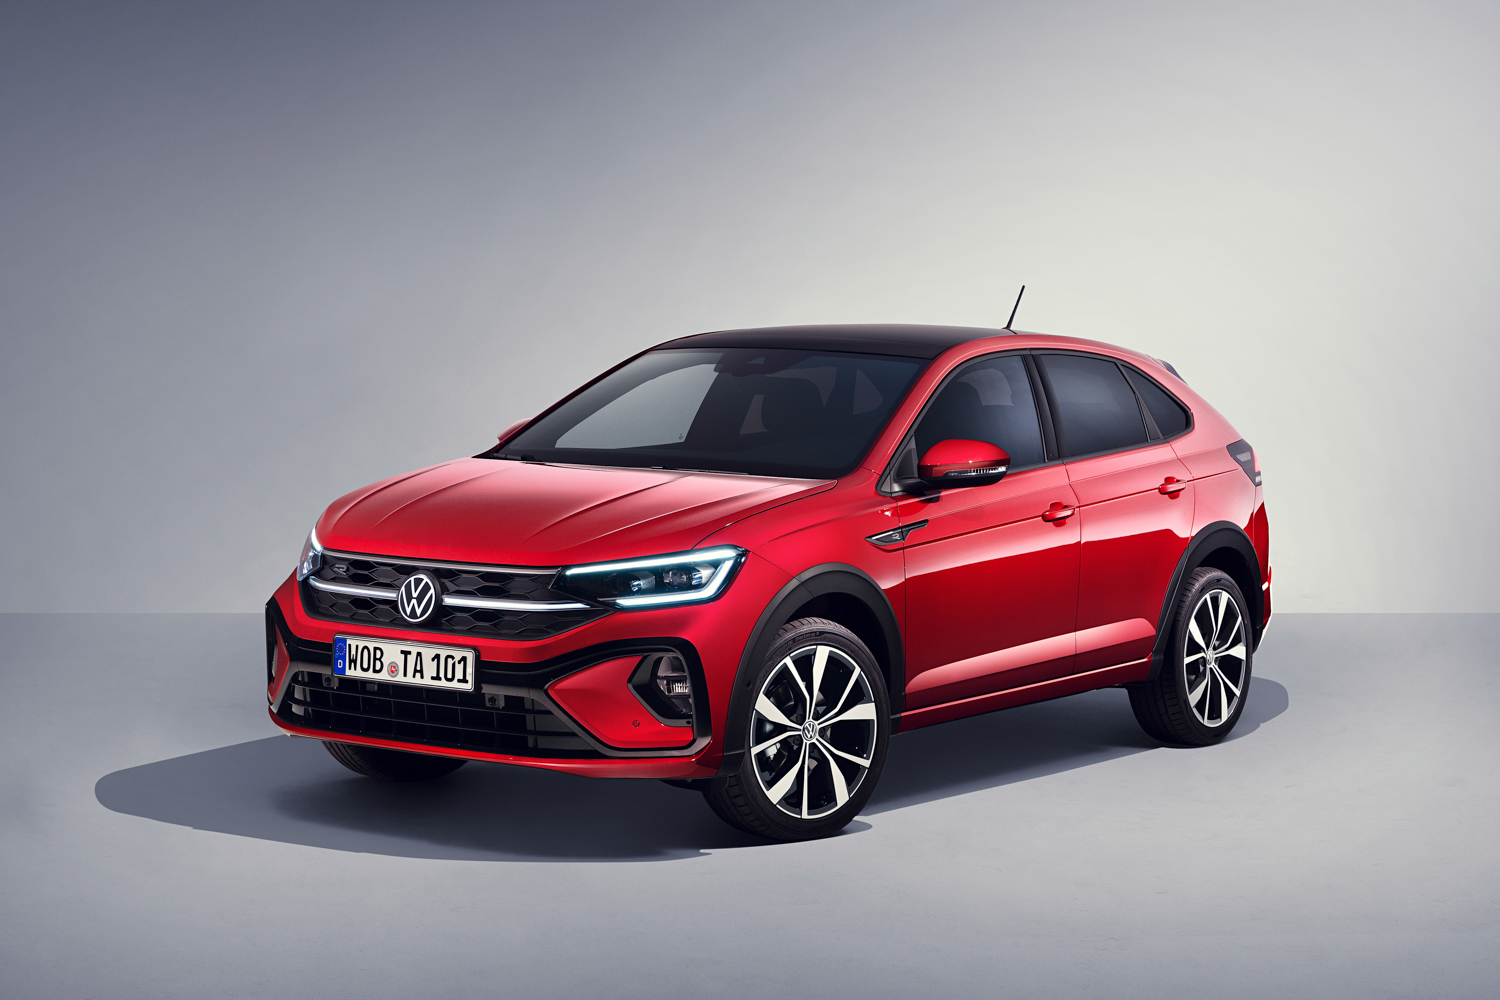 Car News | Volkswagen Ireland launches Taigo crossover coupe | CompleteCar.ie